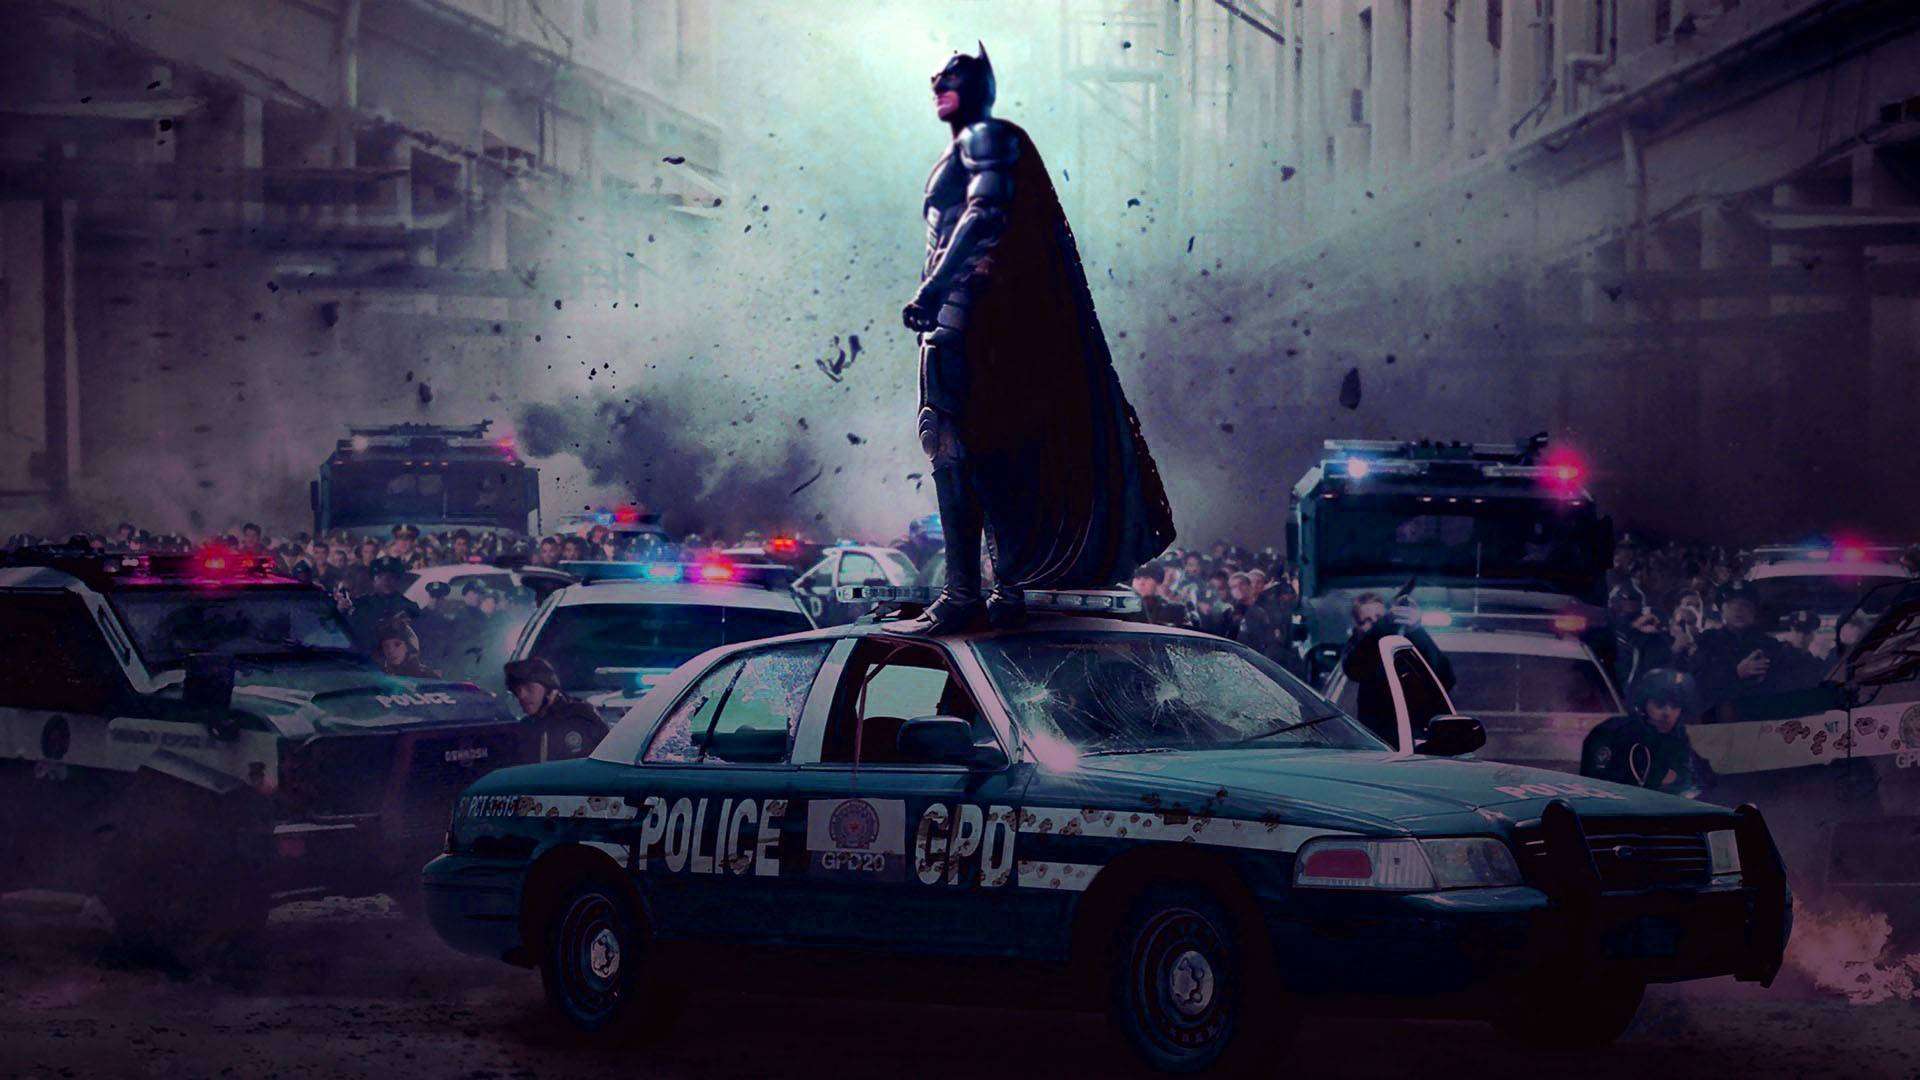 Batman Police 1920×1080 Wallpaper 2280021